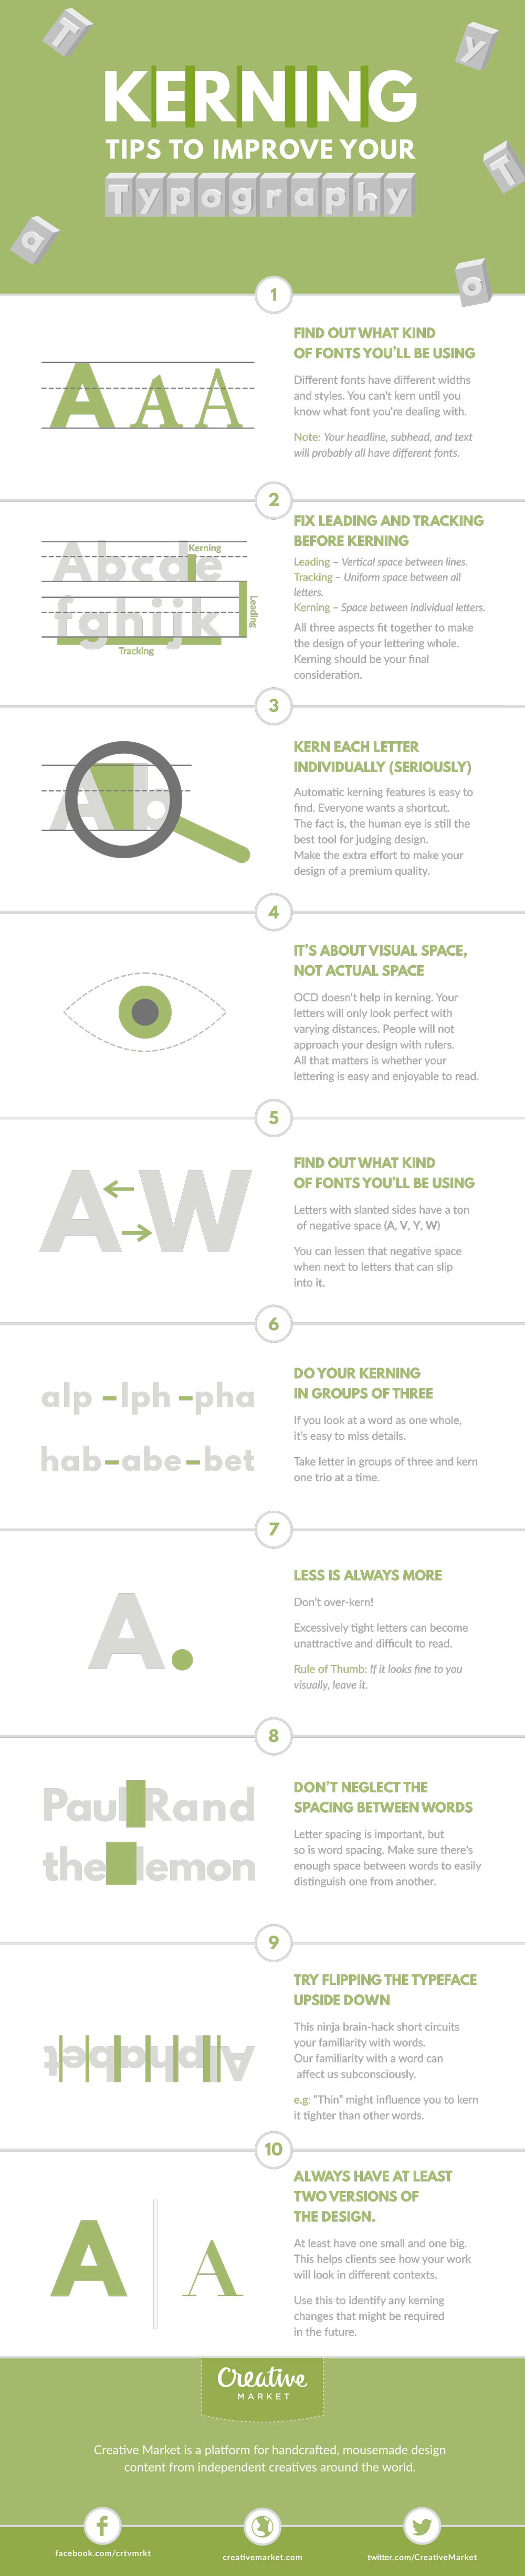 Kerning tips to improve your typography